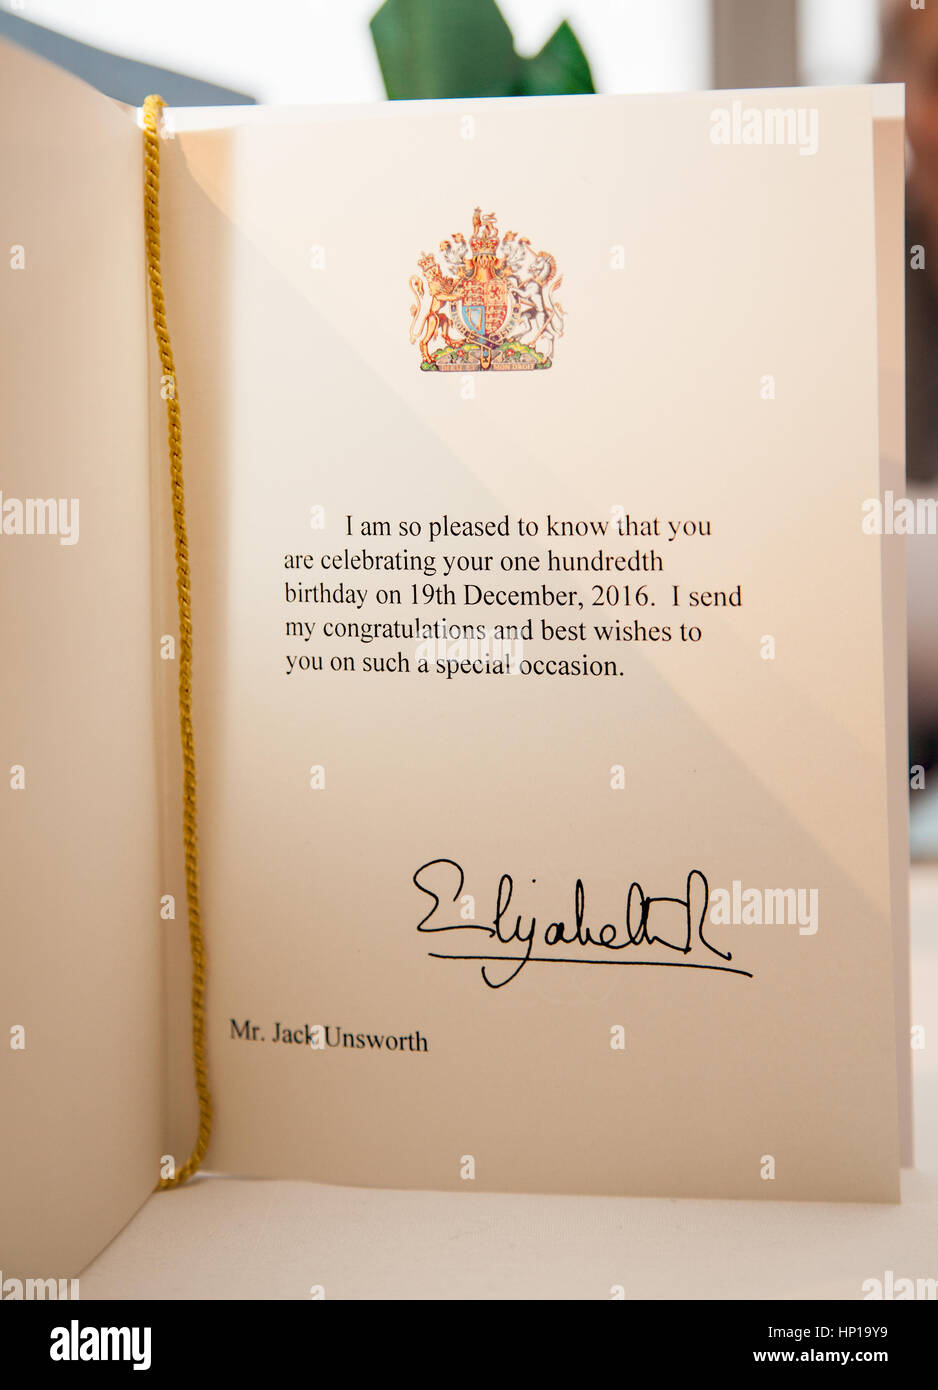 telegram and birthday card from queen elizabeth ll to congratulate man on his 100th birthday